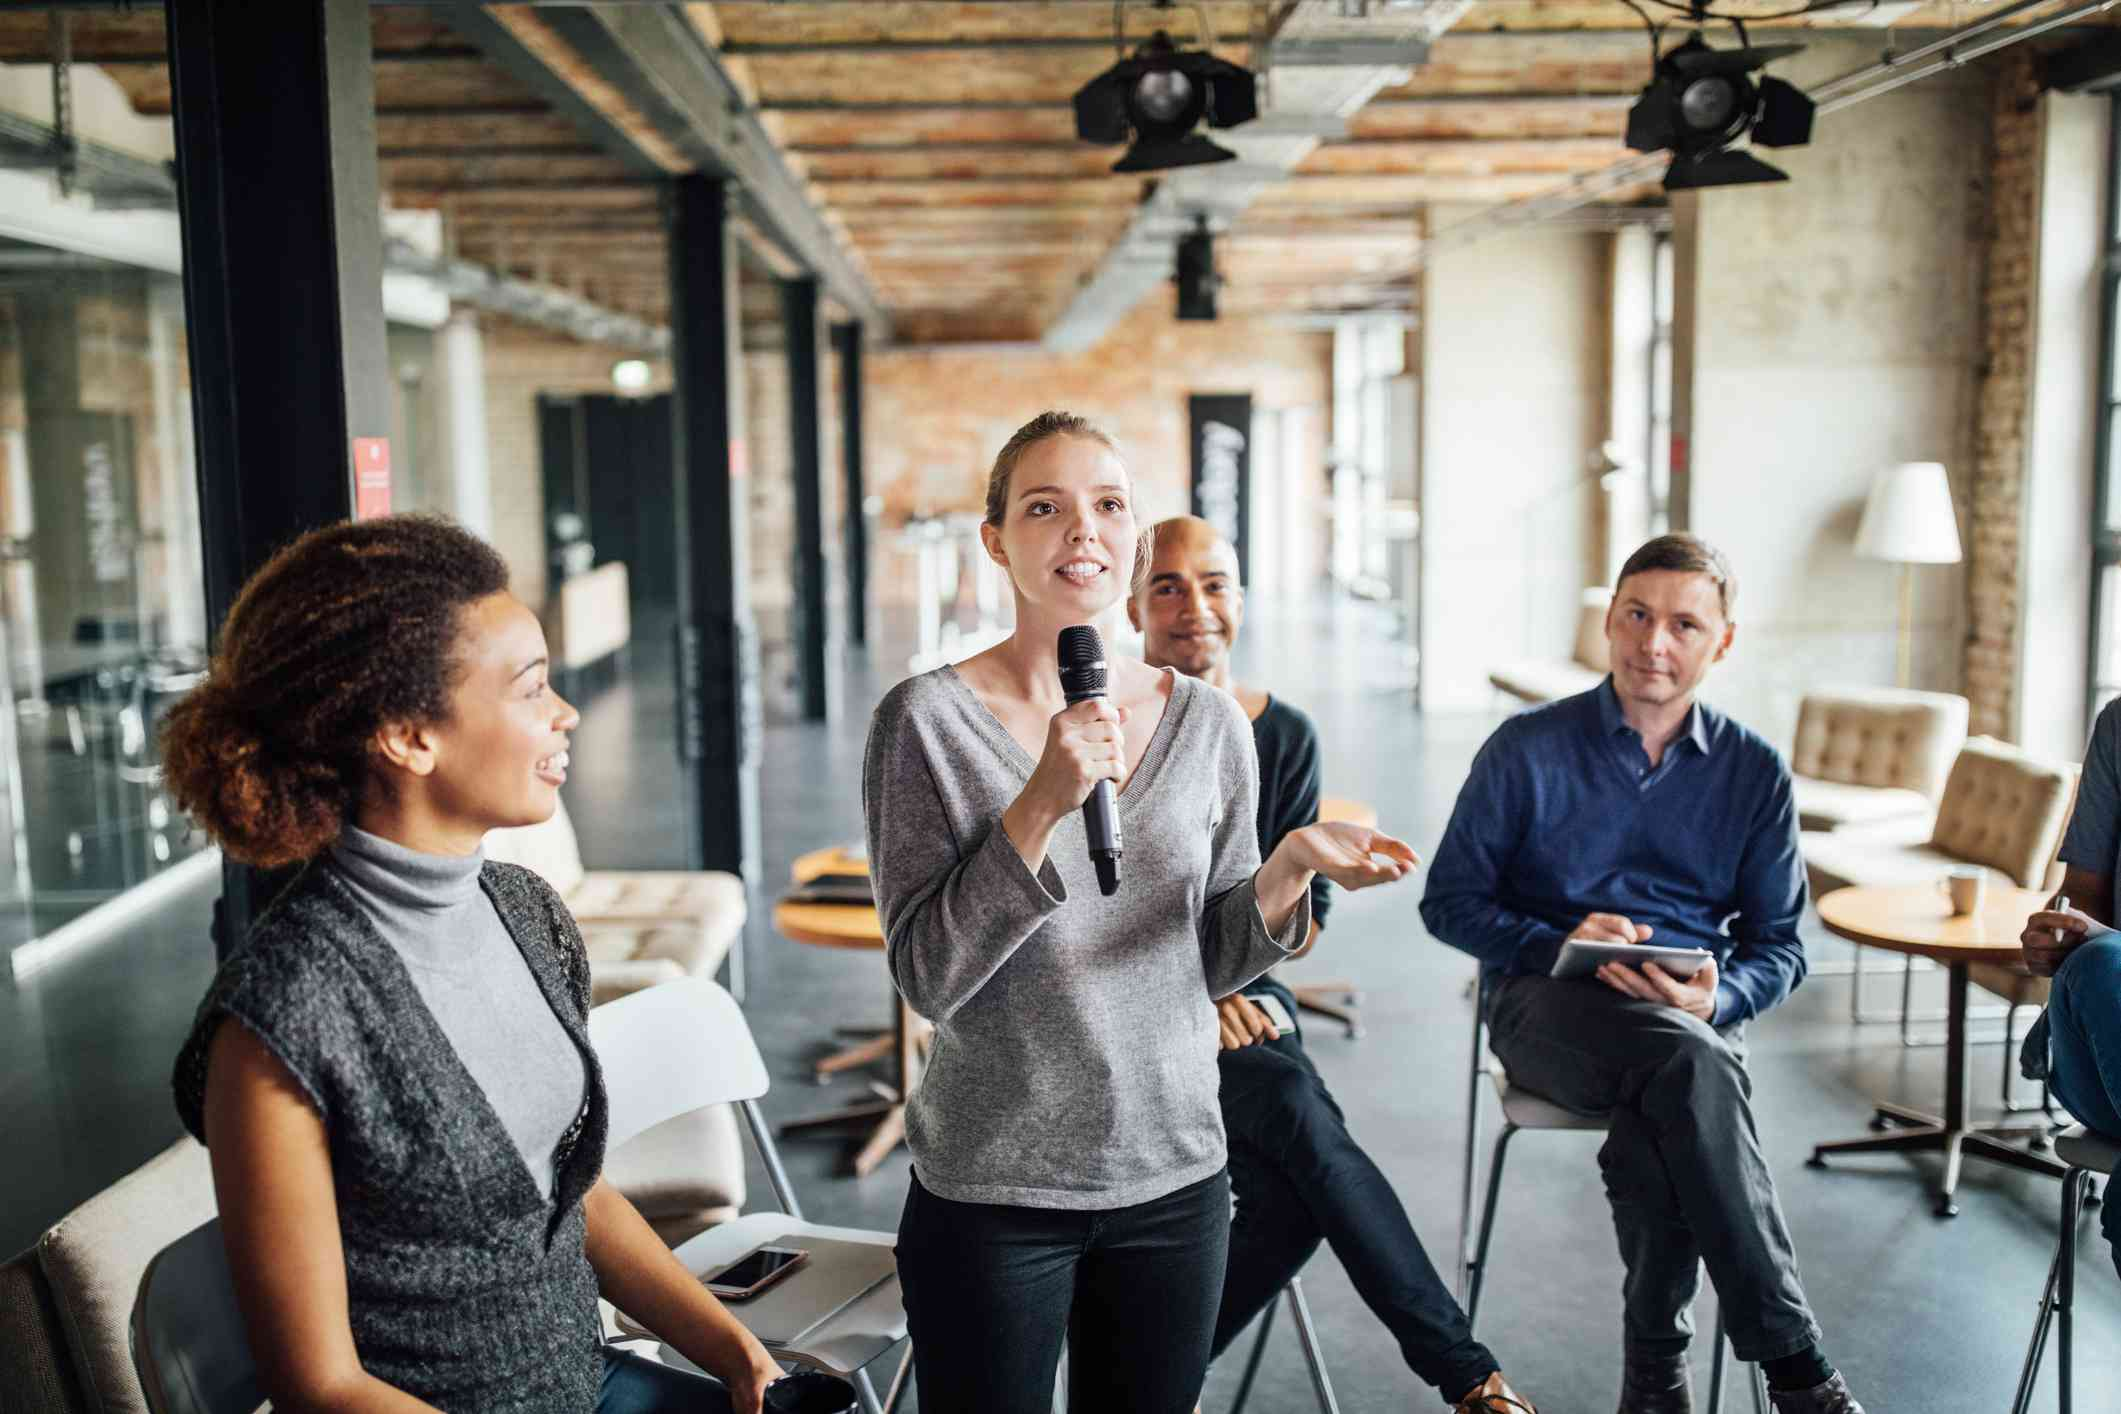 Woman speaks into microphone, coworkers watch